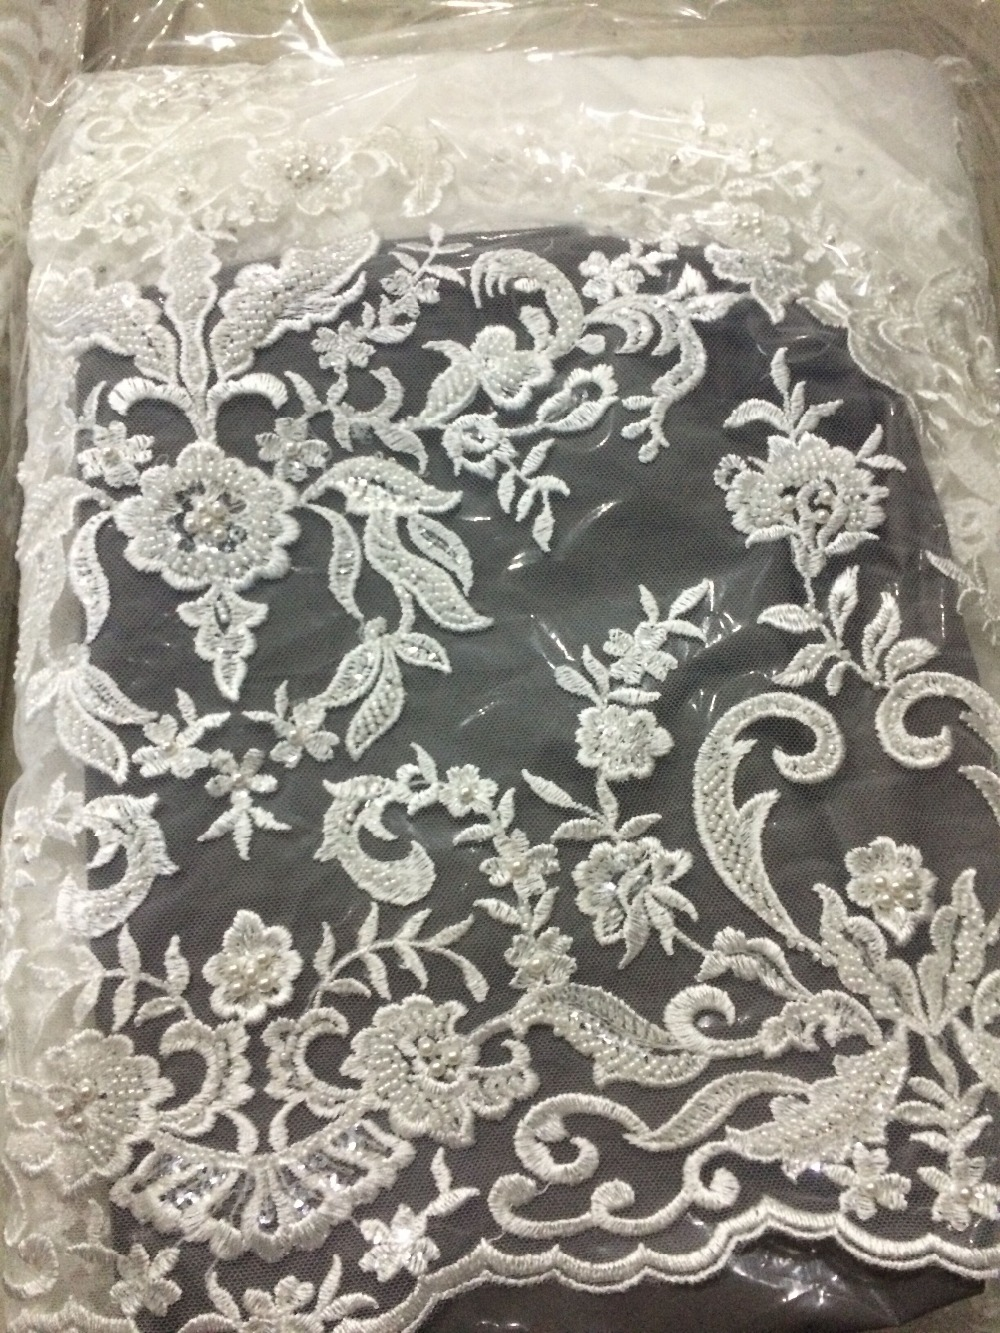 LJY 62029 African French Lace Fabric High Quality African Embroidered Tulle Lace Fabric For Wedding